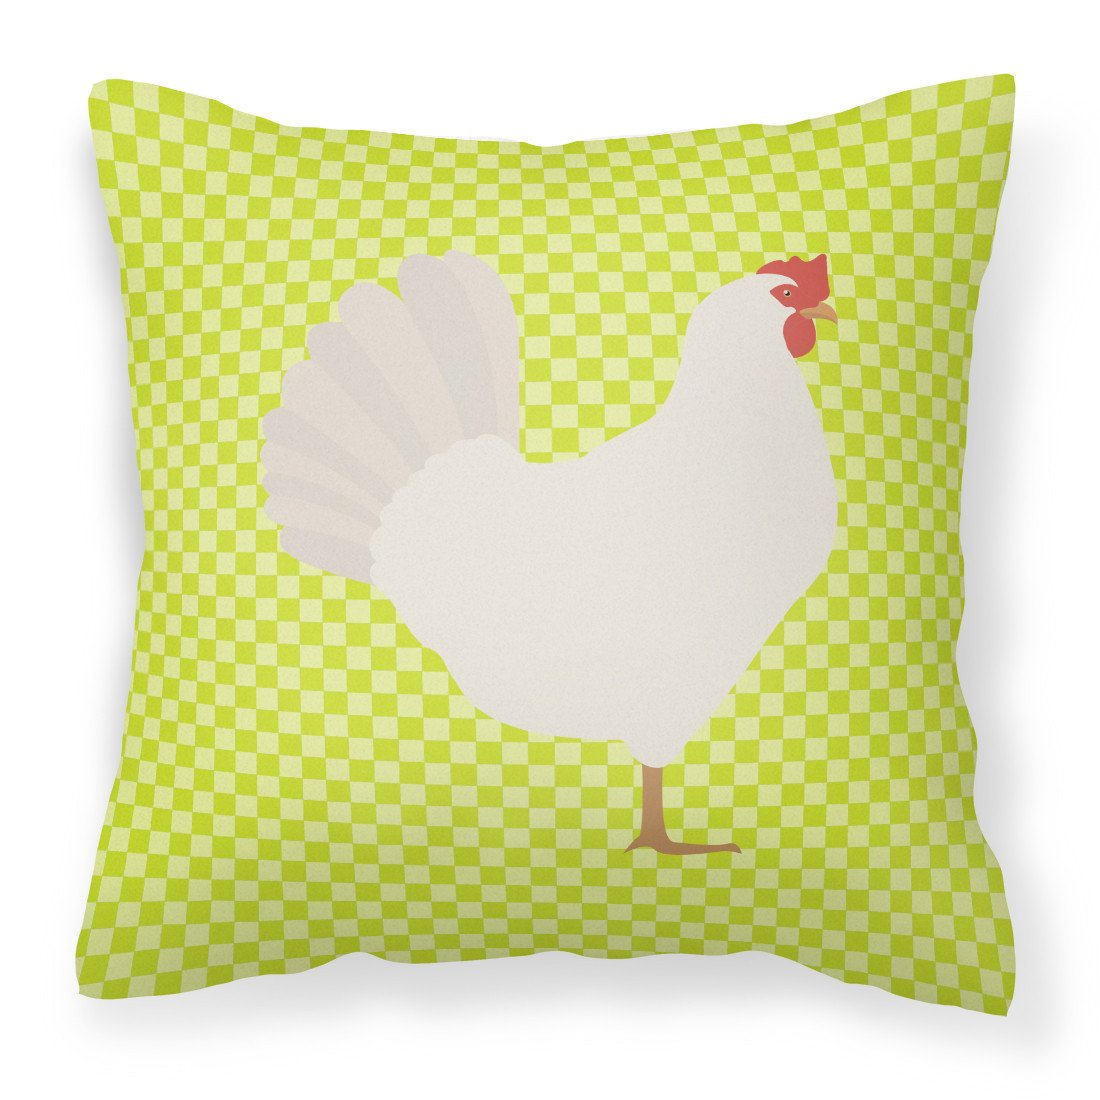 Leghorn Chicken Green Fabric Decorative Pillow BB7666PW1818 by Caroline's Treasures